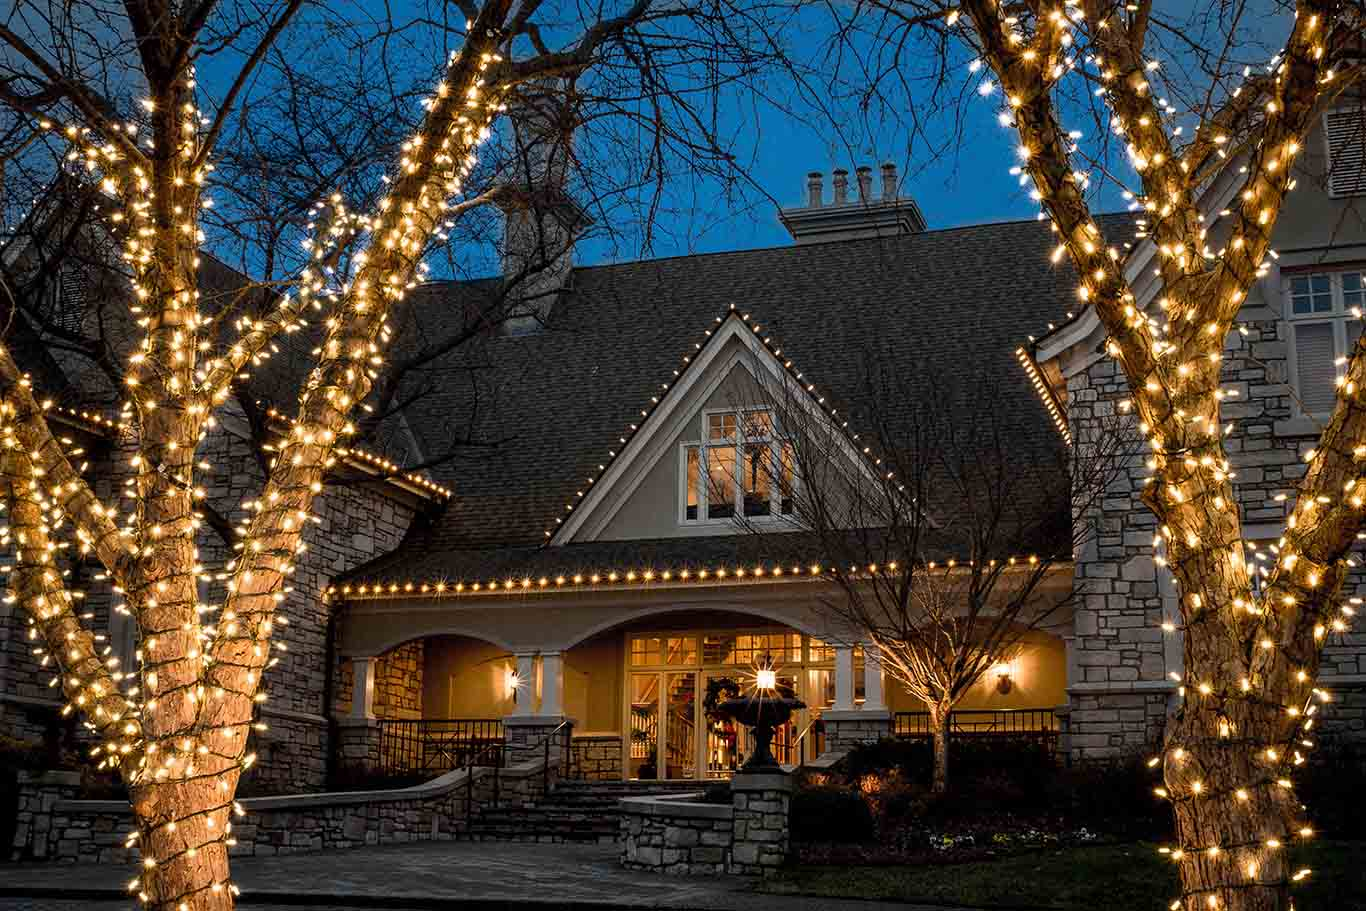 Professional Christmas lighting and holiday decorating